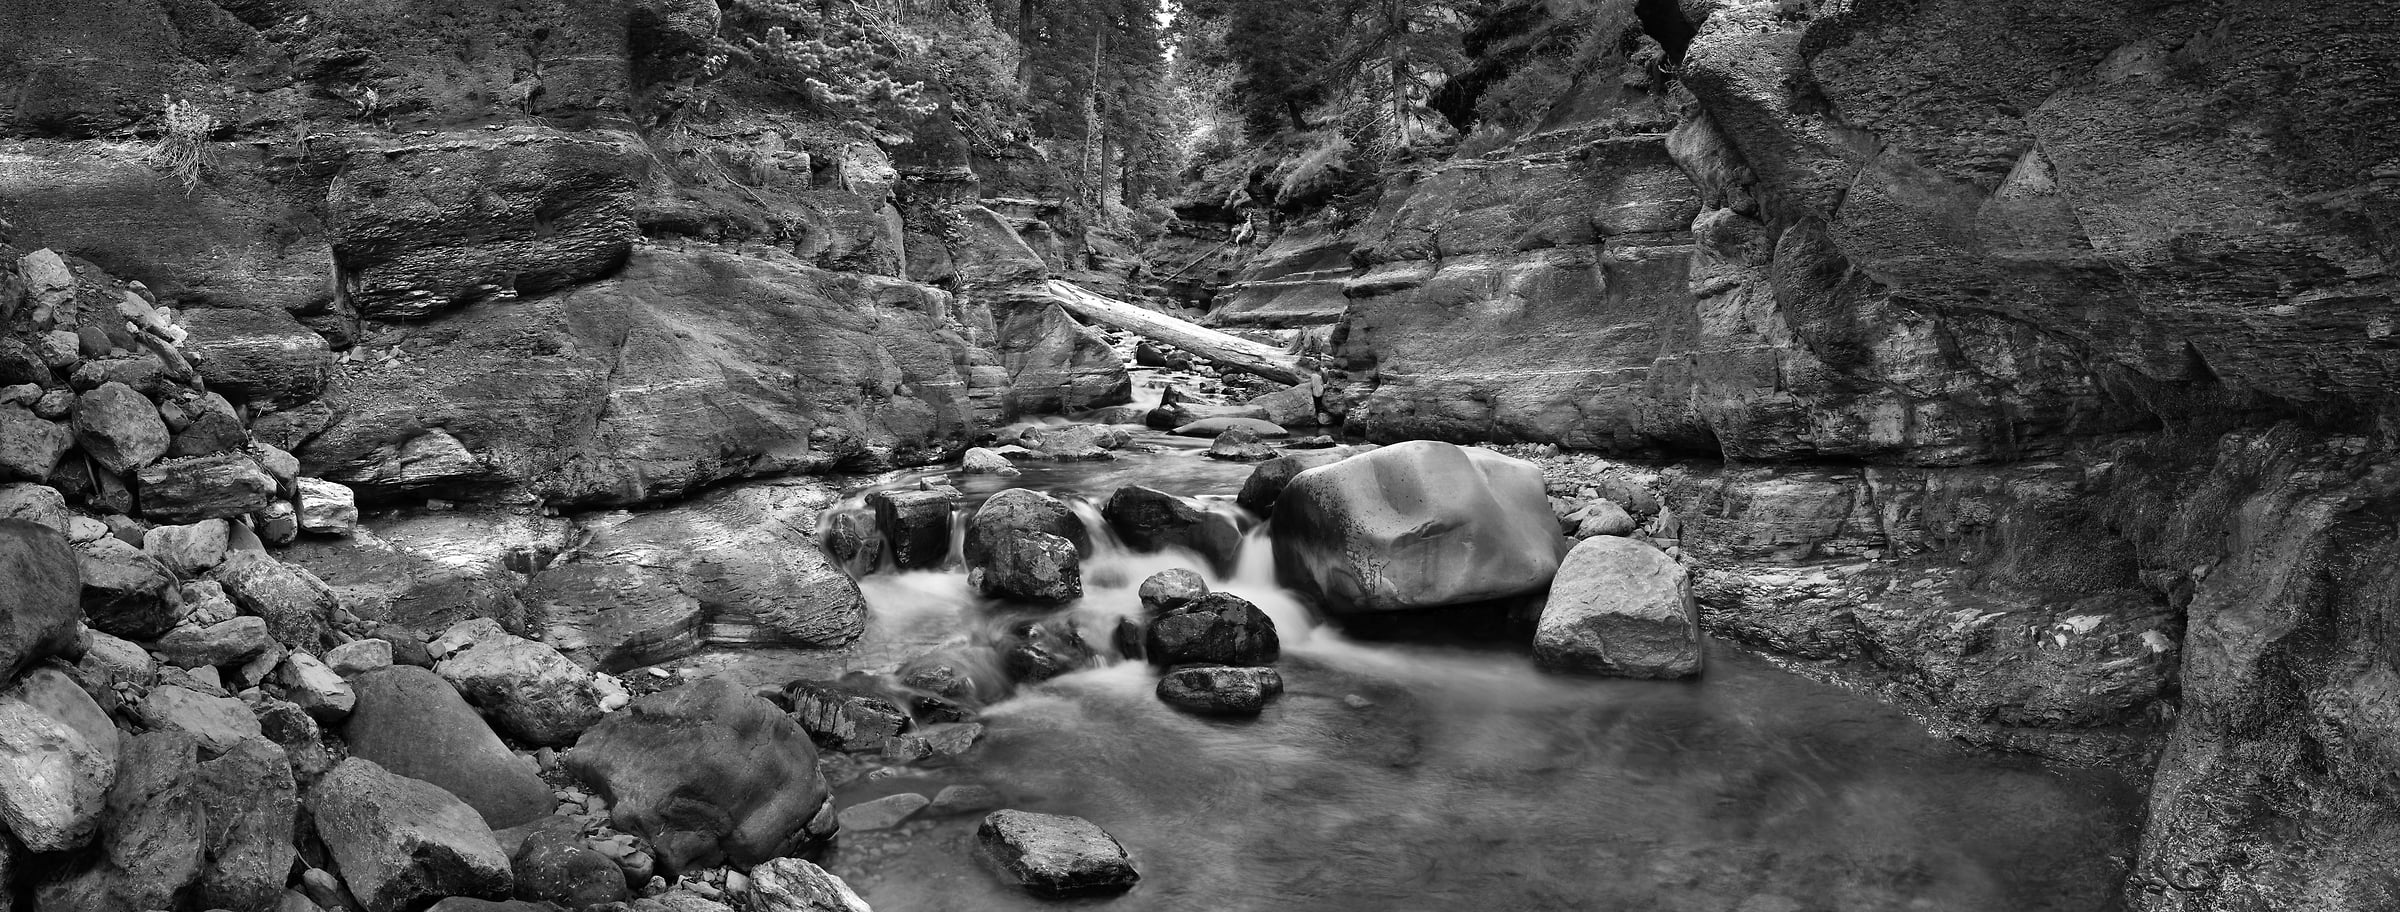 4,741 megapixels! A very high resolution, large-format VAST photo print of a stream, waterfall, and rocks; black and white fine art nature photo created by Steve Webster in Red Rock Canyon, Waterton Lakes National Park, Alberta Canada